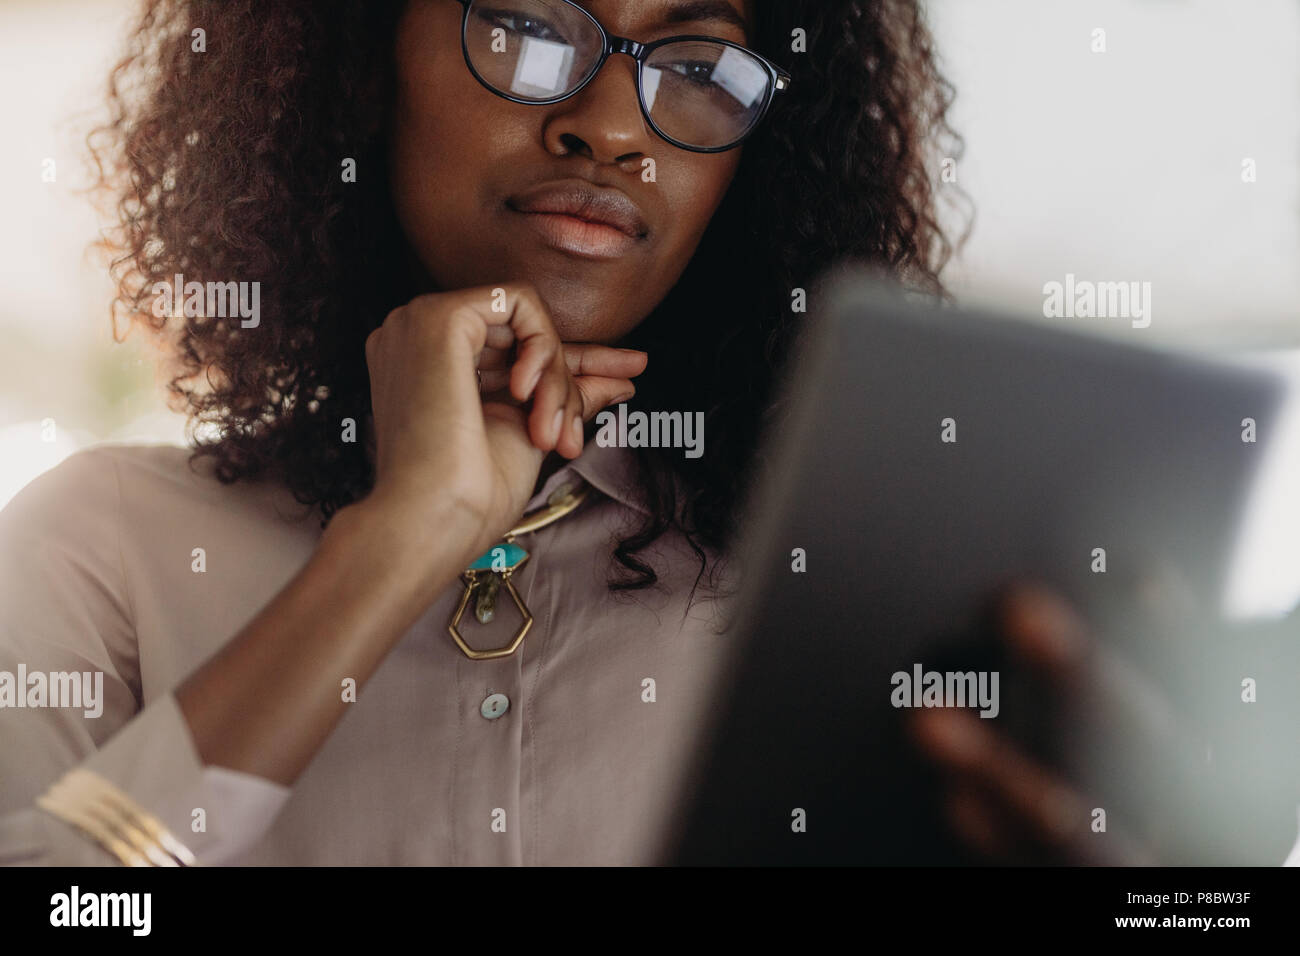 Close up of a curly haired businesswoman in spectacles looking at tablet pc with hand on chin. Low angle view of woman entrepreneur in formal attire l - Stock Image